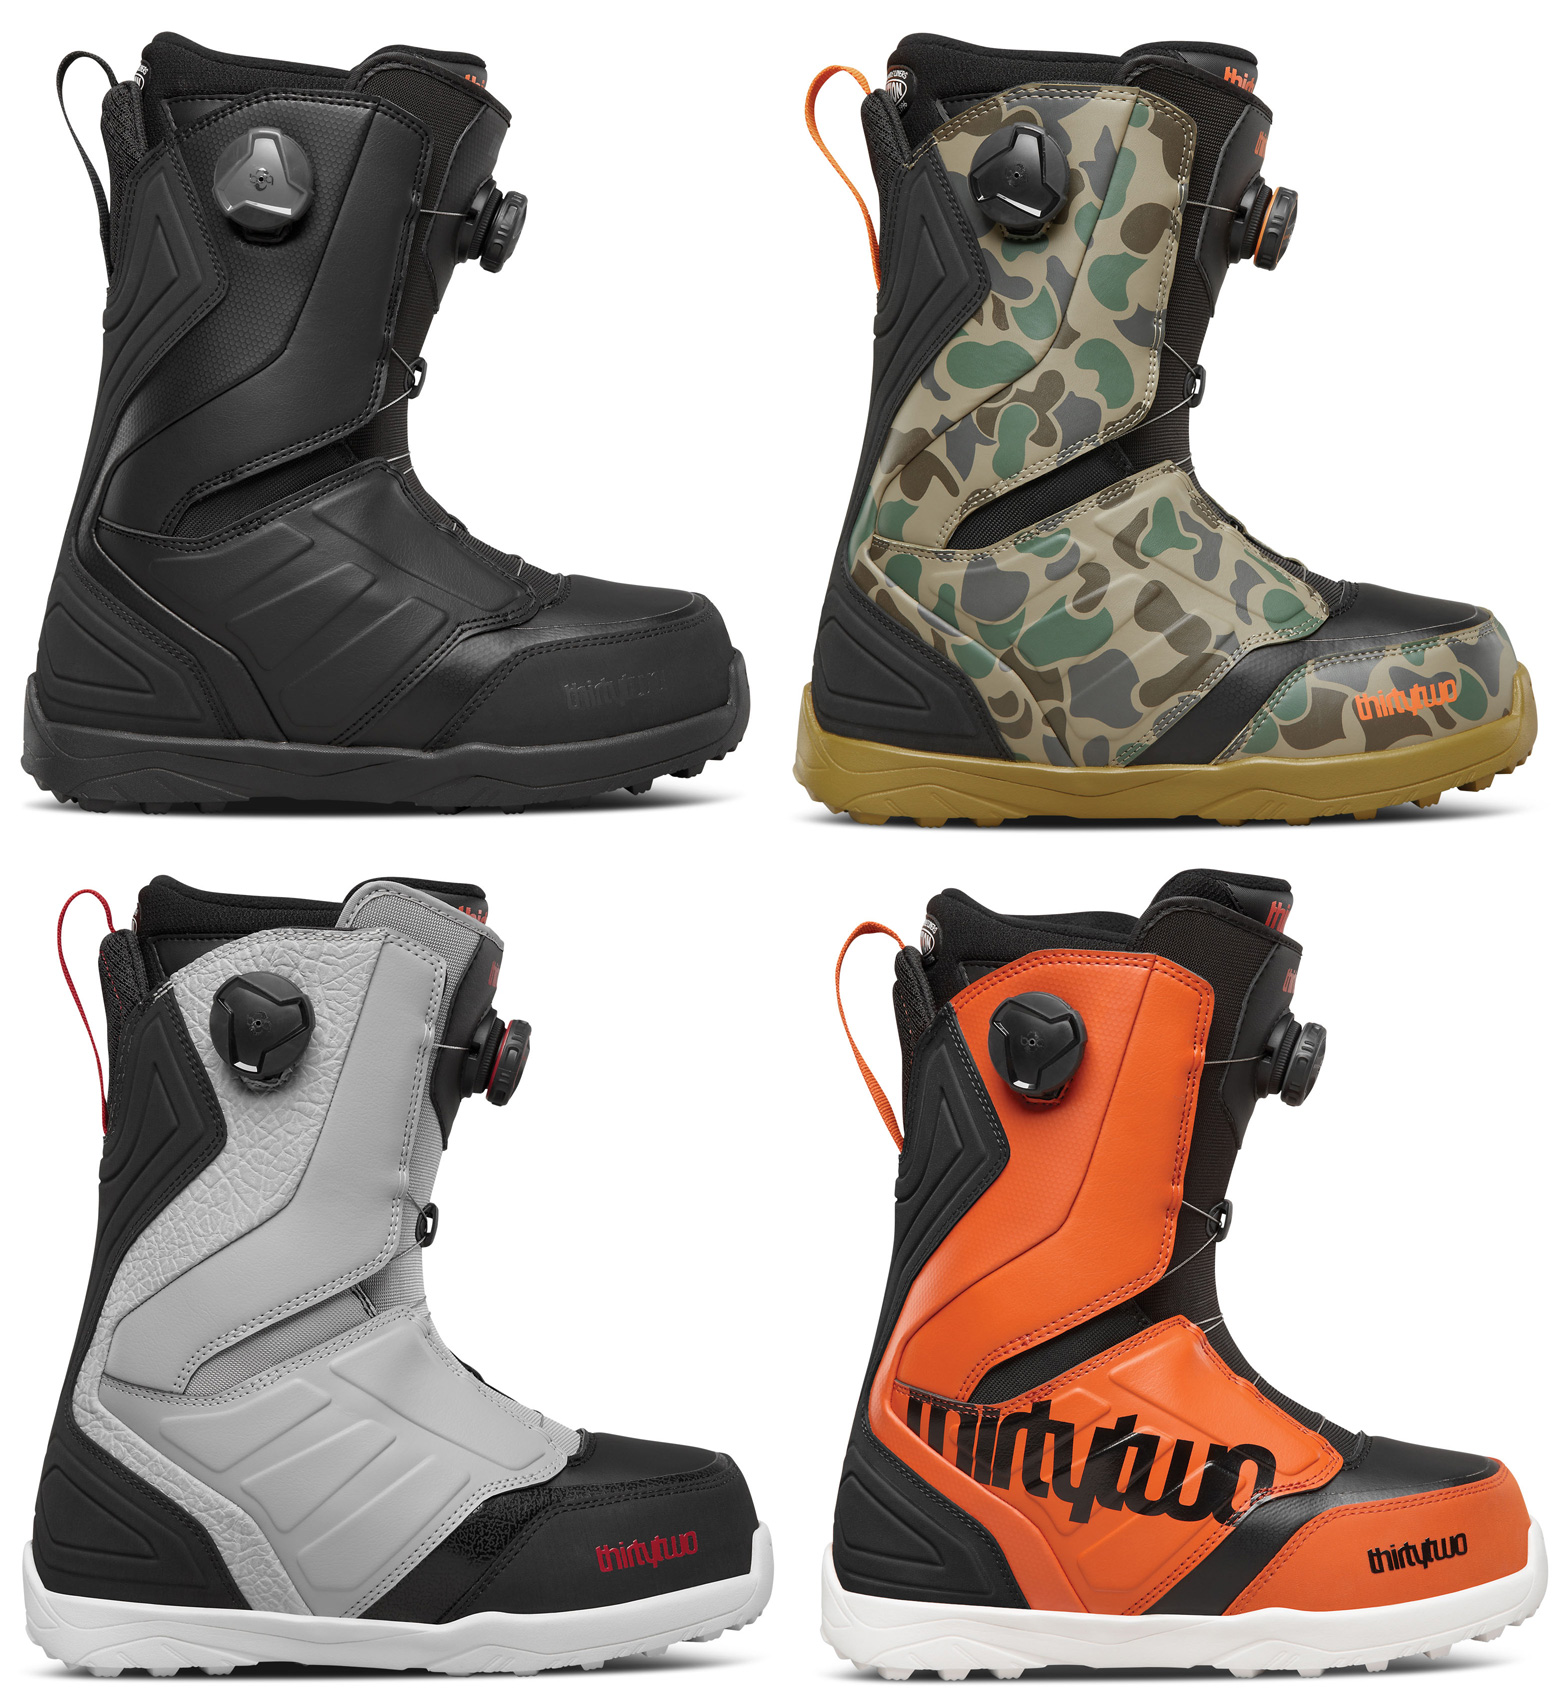 Sentinel Thirtytwo Snowboard Boots - Lashed Double Boa Sample - All  Mountain - 2018 b00866db7a70